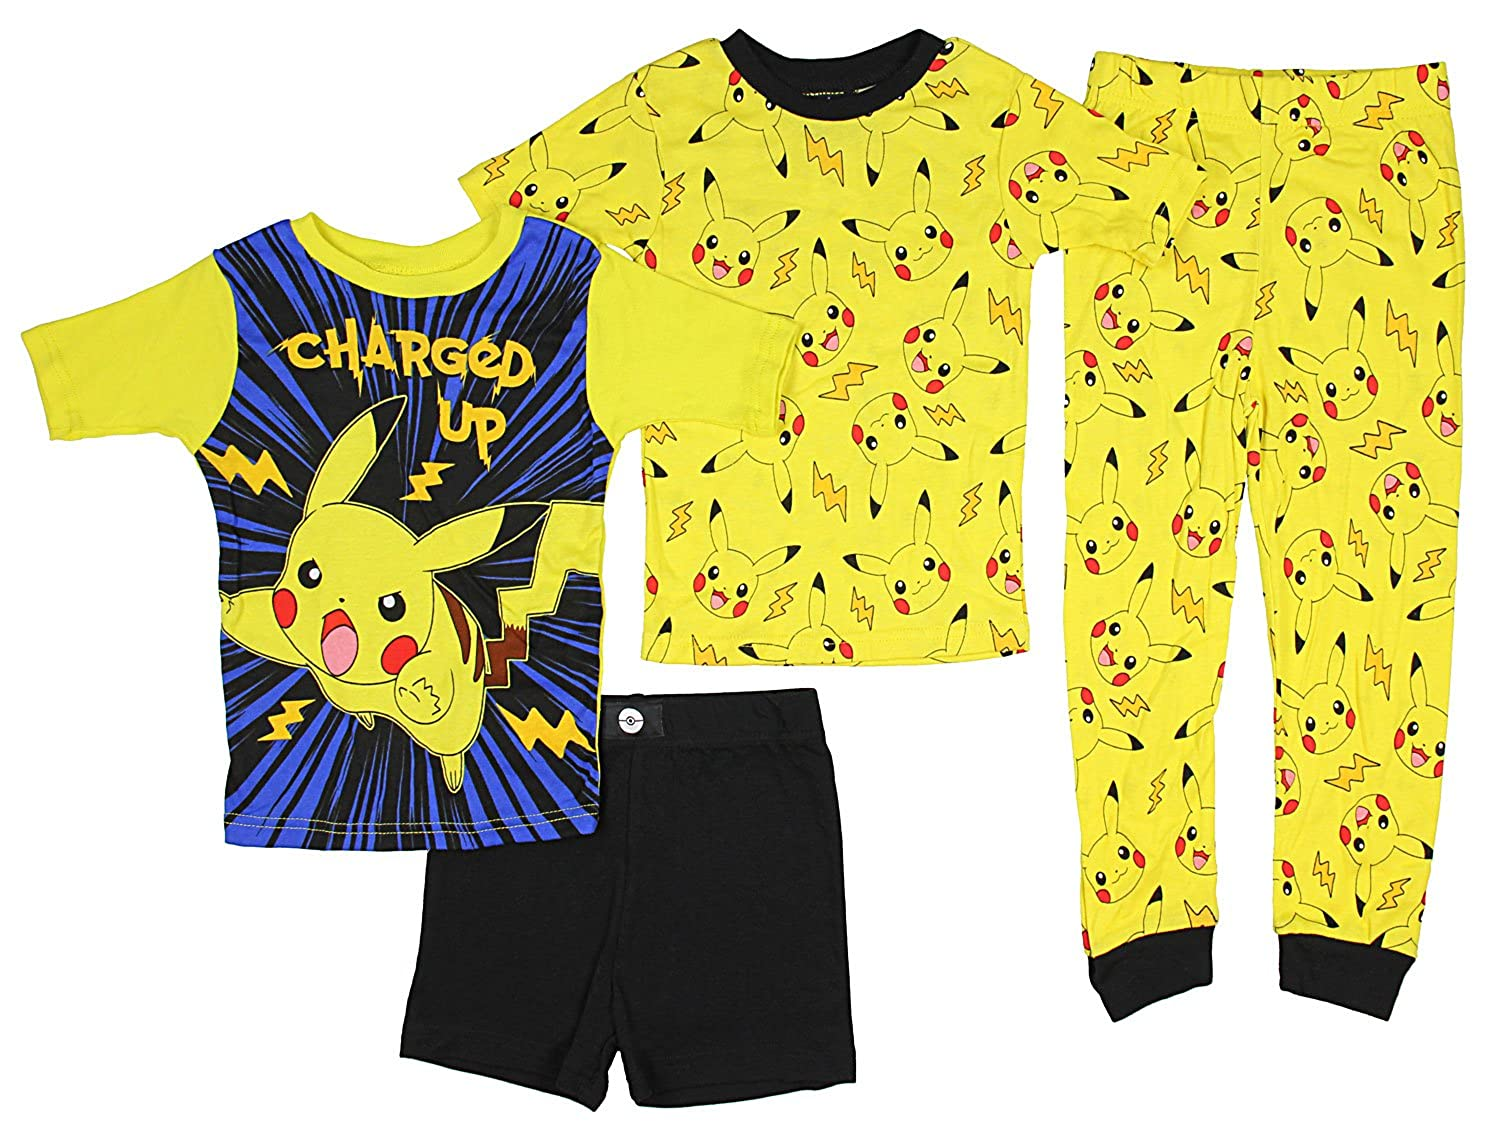 Pokemon Boys' Catch 'em All 4-Piece Cotton Pajama Set 21PK126BSLZA-P6